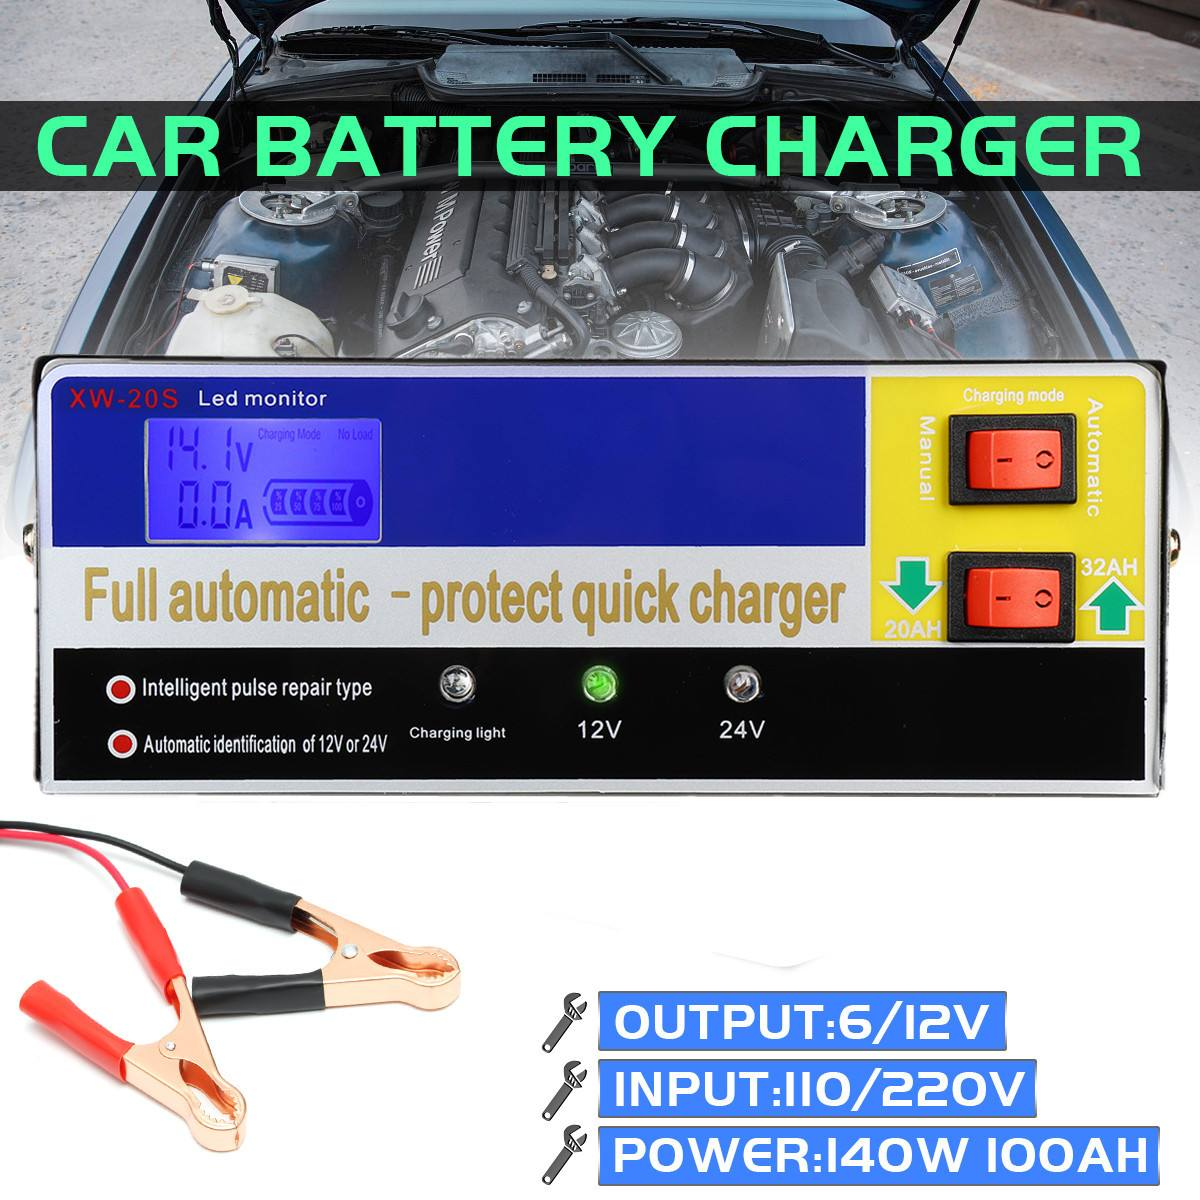 110V 12V/24V 100AH Intelligent Pulse Repair Type Electric Car Battery Charger PWM Constant Voltage Charging Various Protections